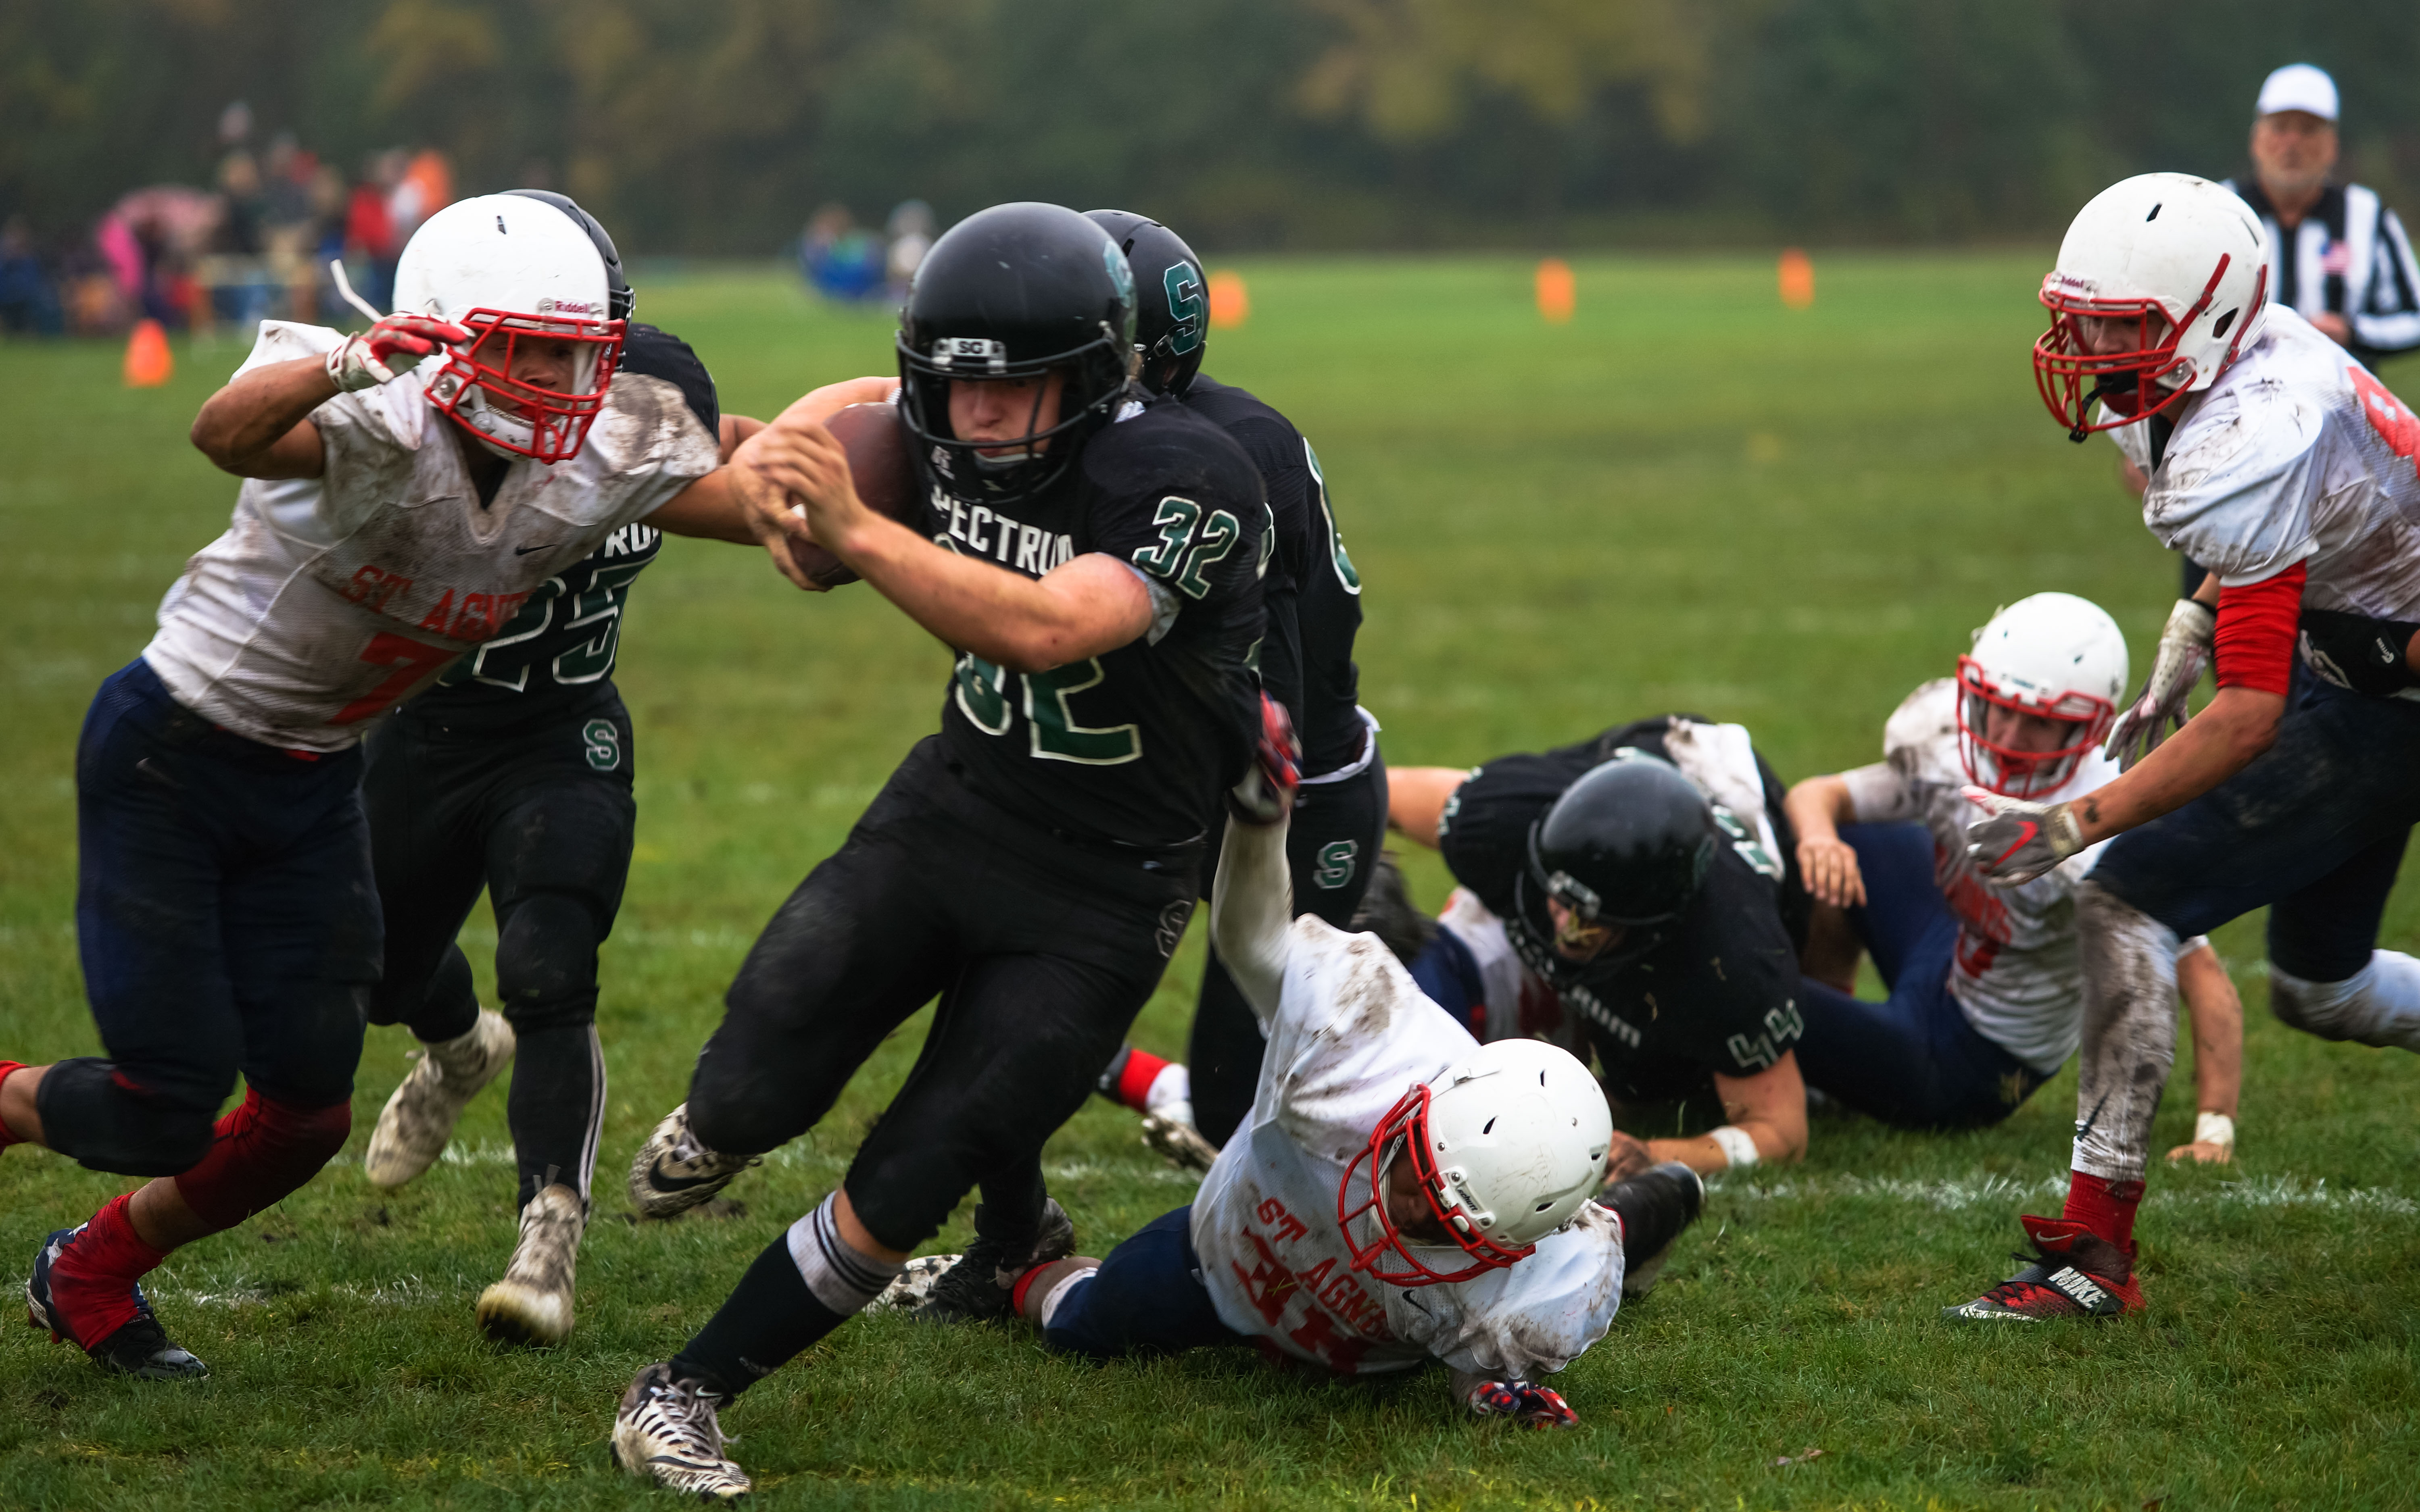 Spectrum's Fisher Marberg (32) fights off St. Agnes defenders during a 2nd quarter touchdown run on Oct. 5. Photo by Korey McDermott, SportsEngine